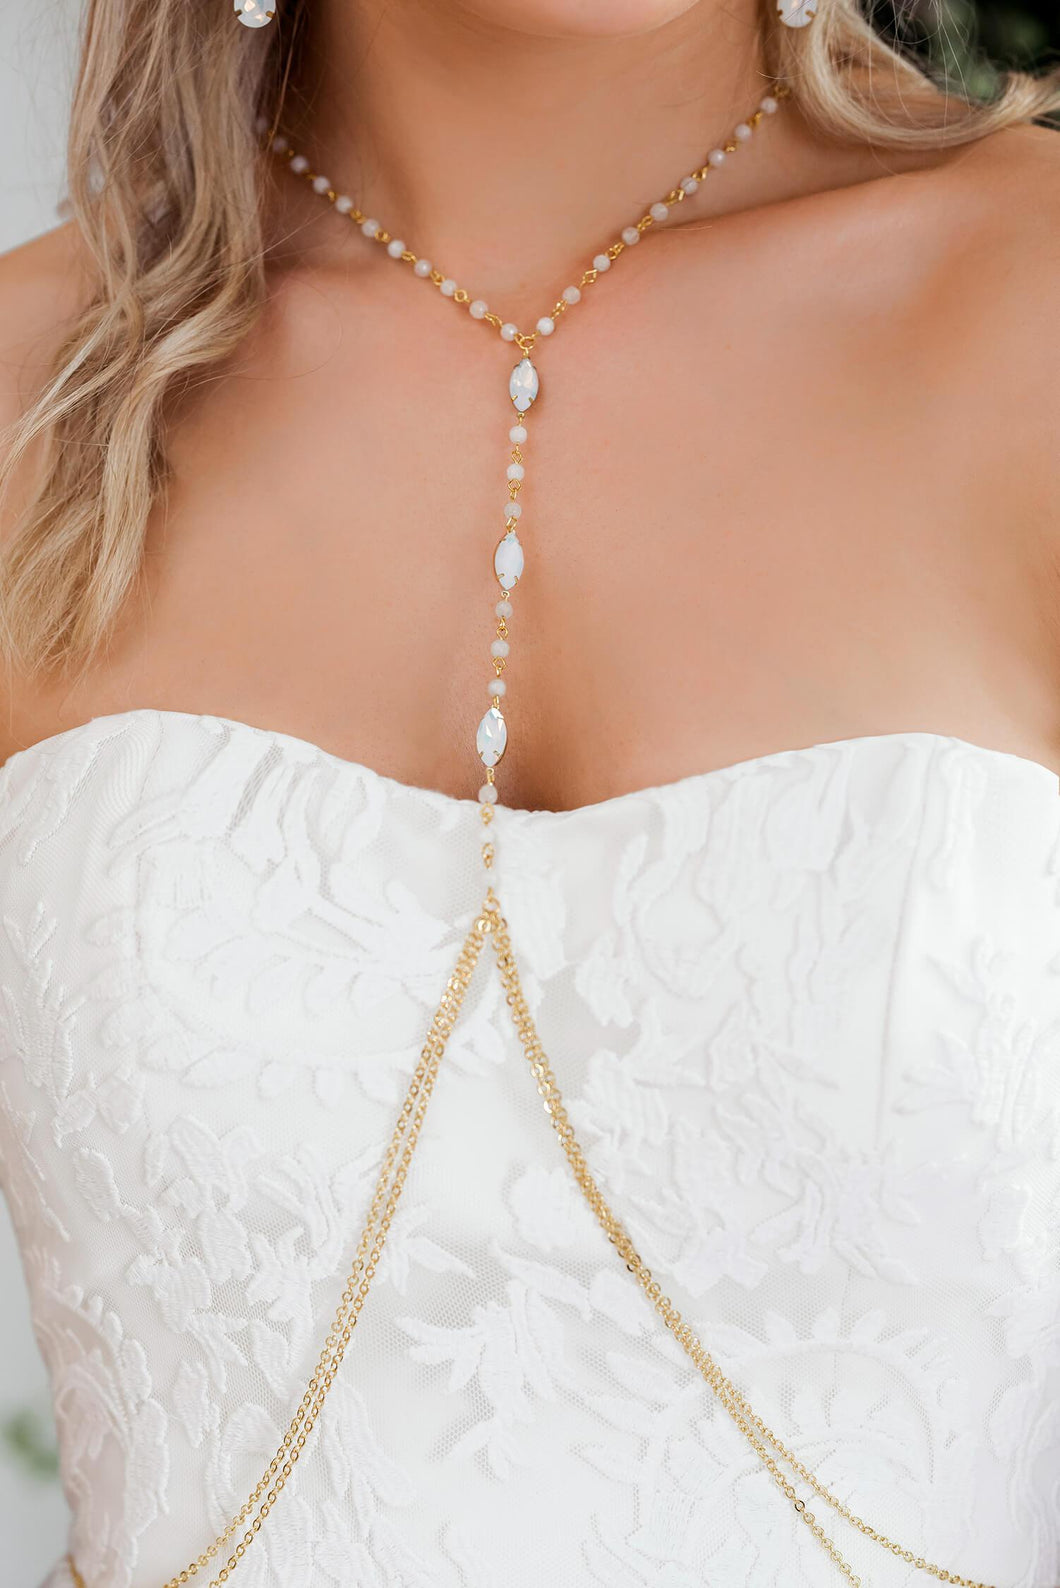 Gold Tallulah Body Chain Harness Necklace from side